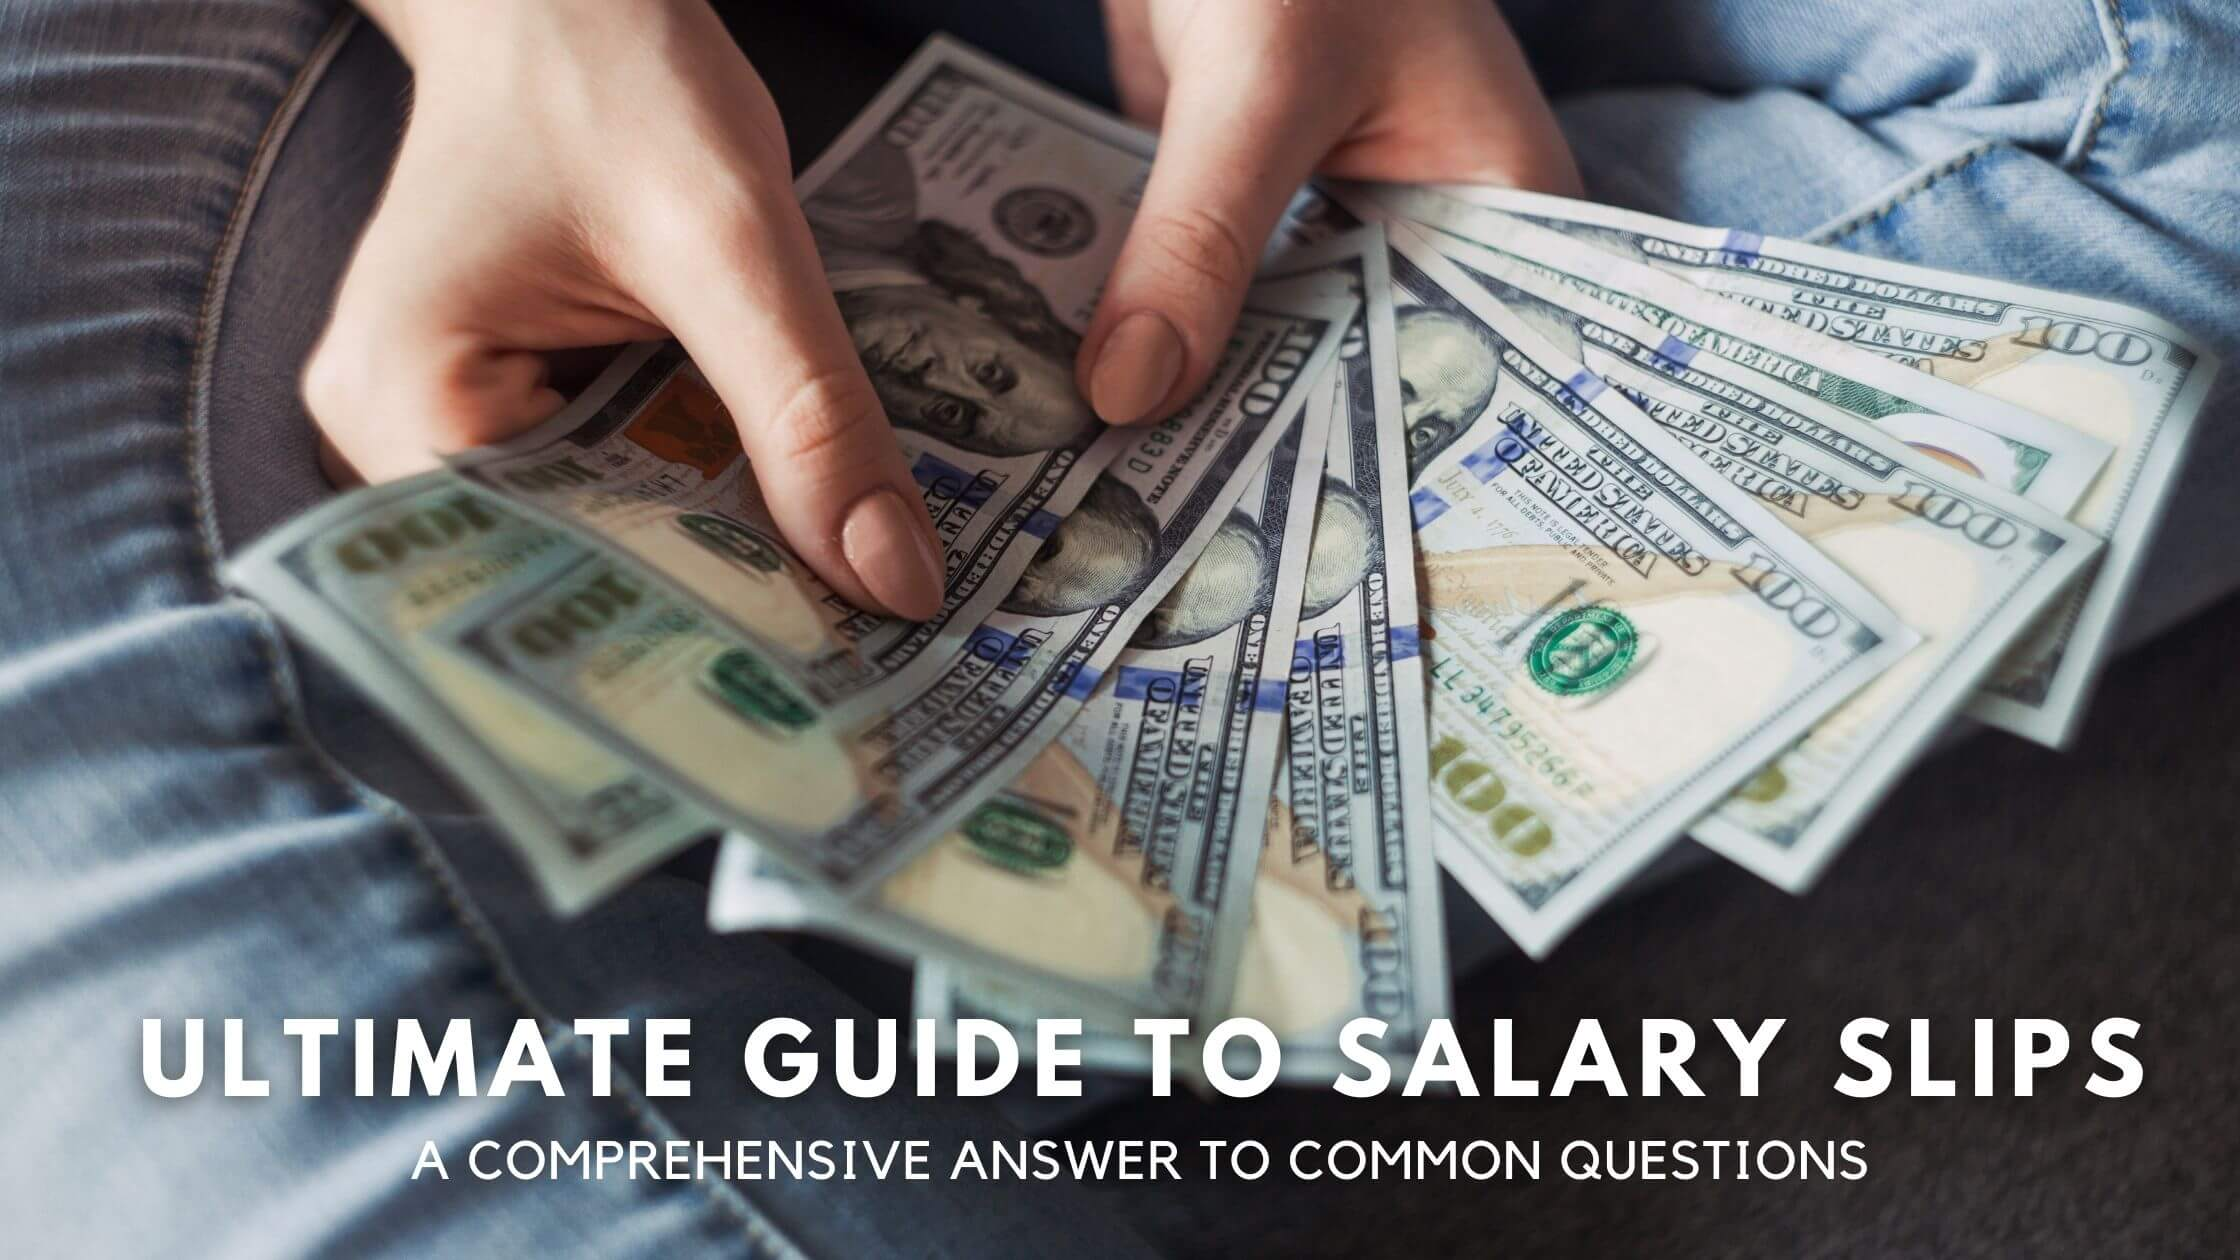 Ultimate Guide to Salary Slips